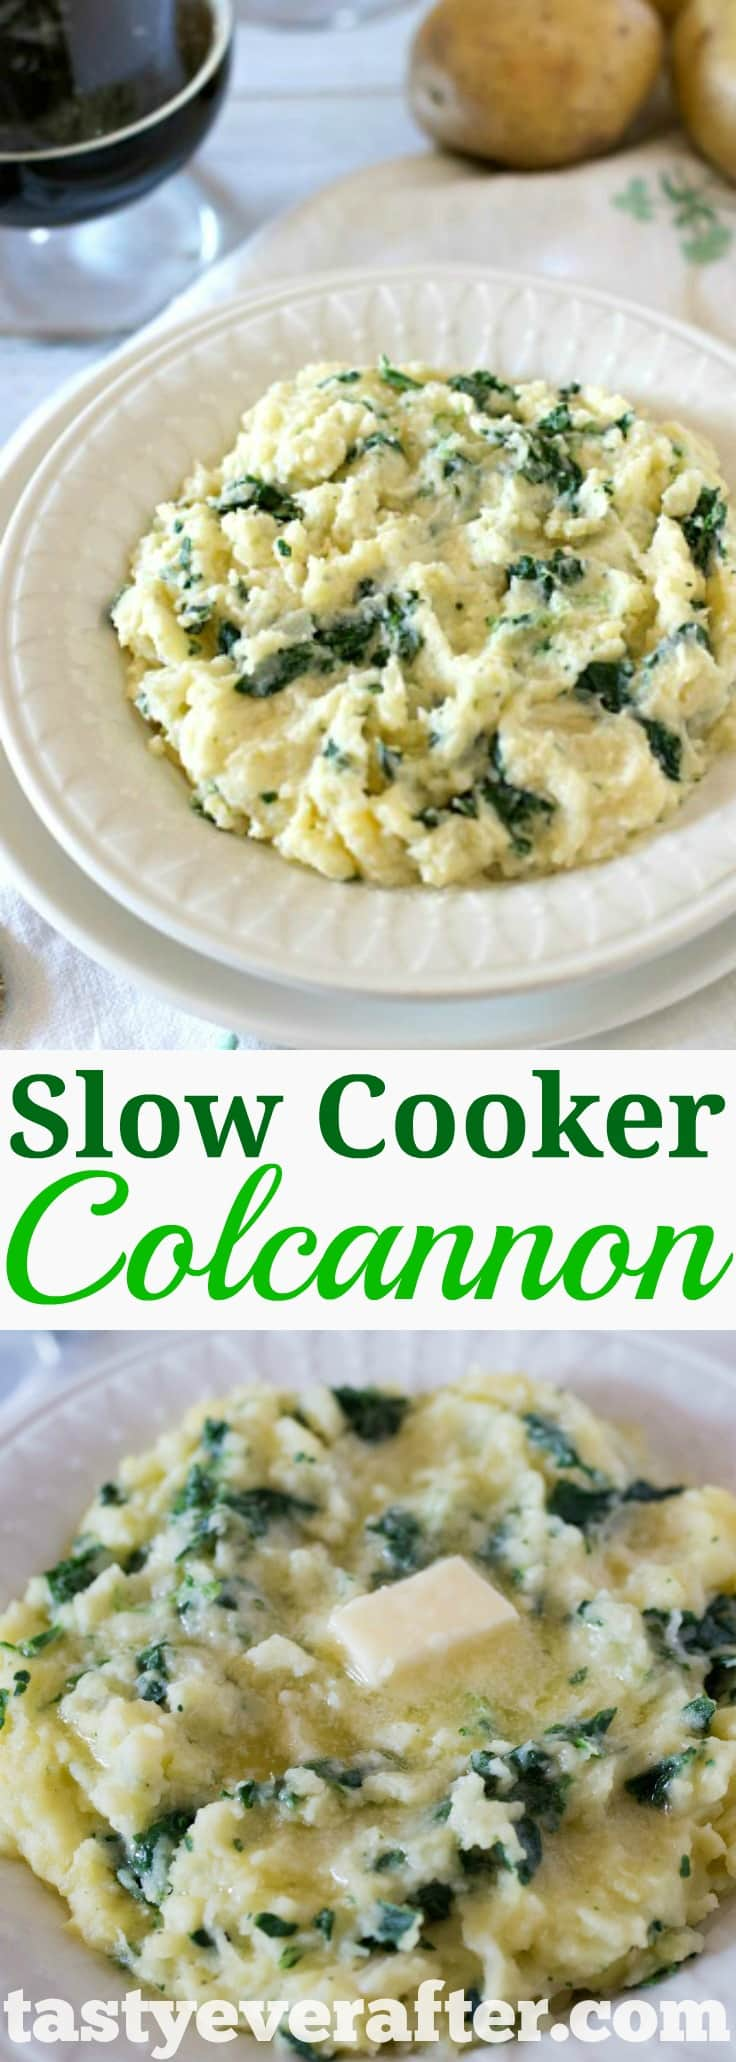 Slow Cooker Colcannon